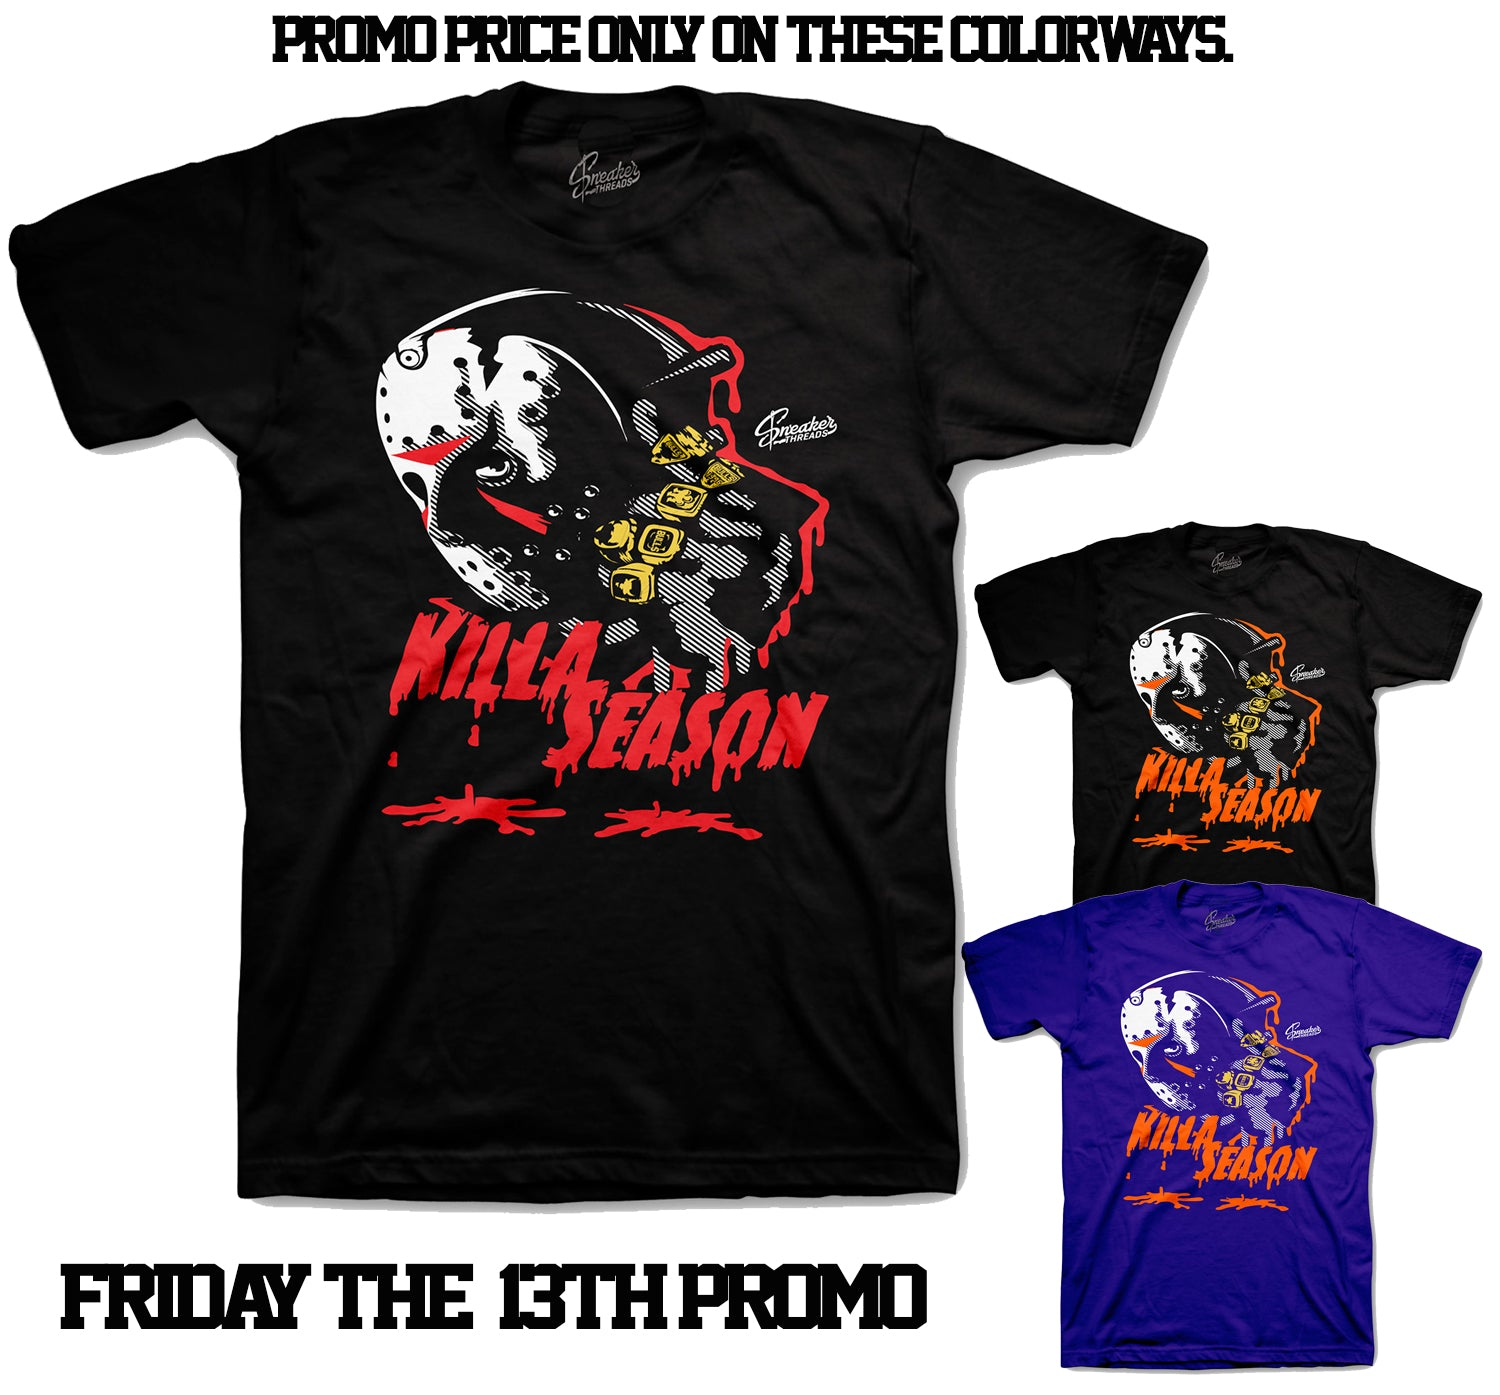 Killa Season Shirt - Friday The 13th Special